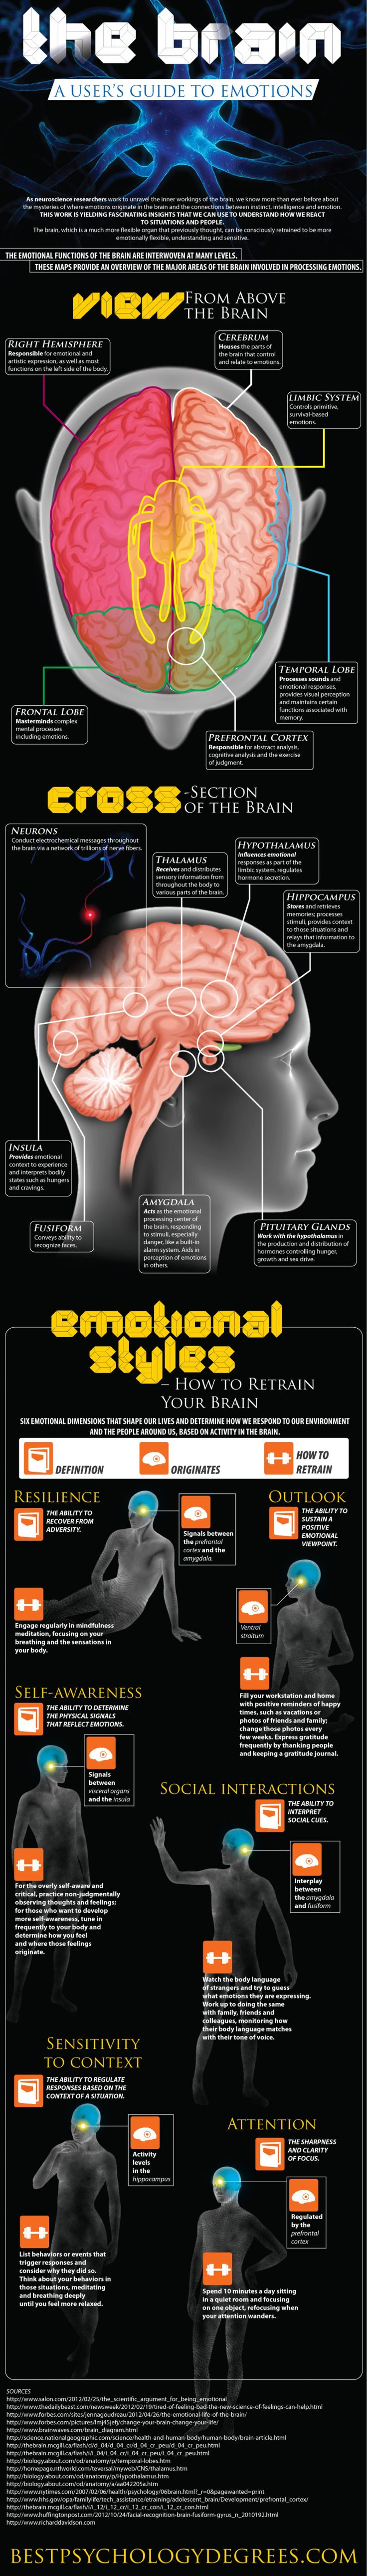 Emotions and the brain. Learn about them in this infographic.